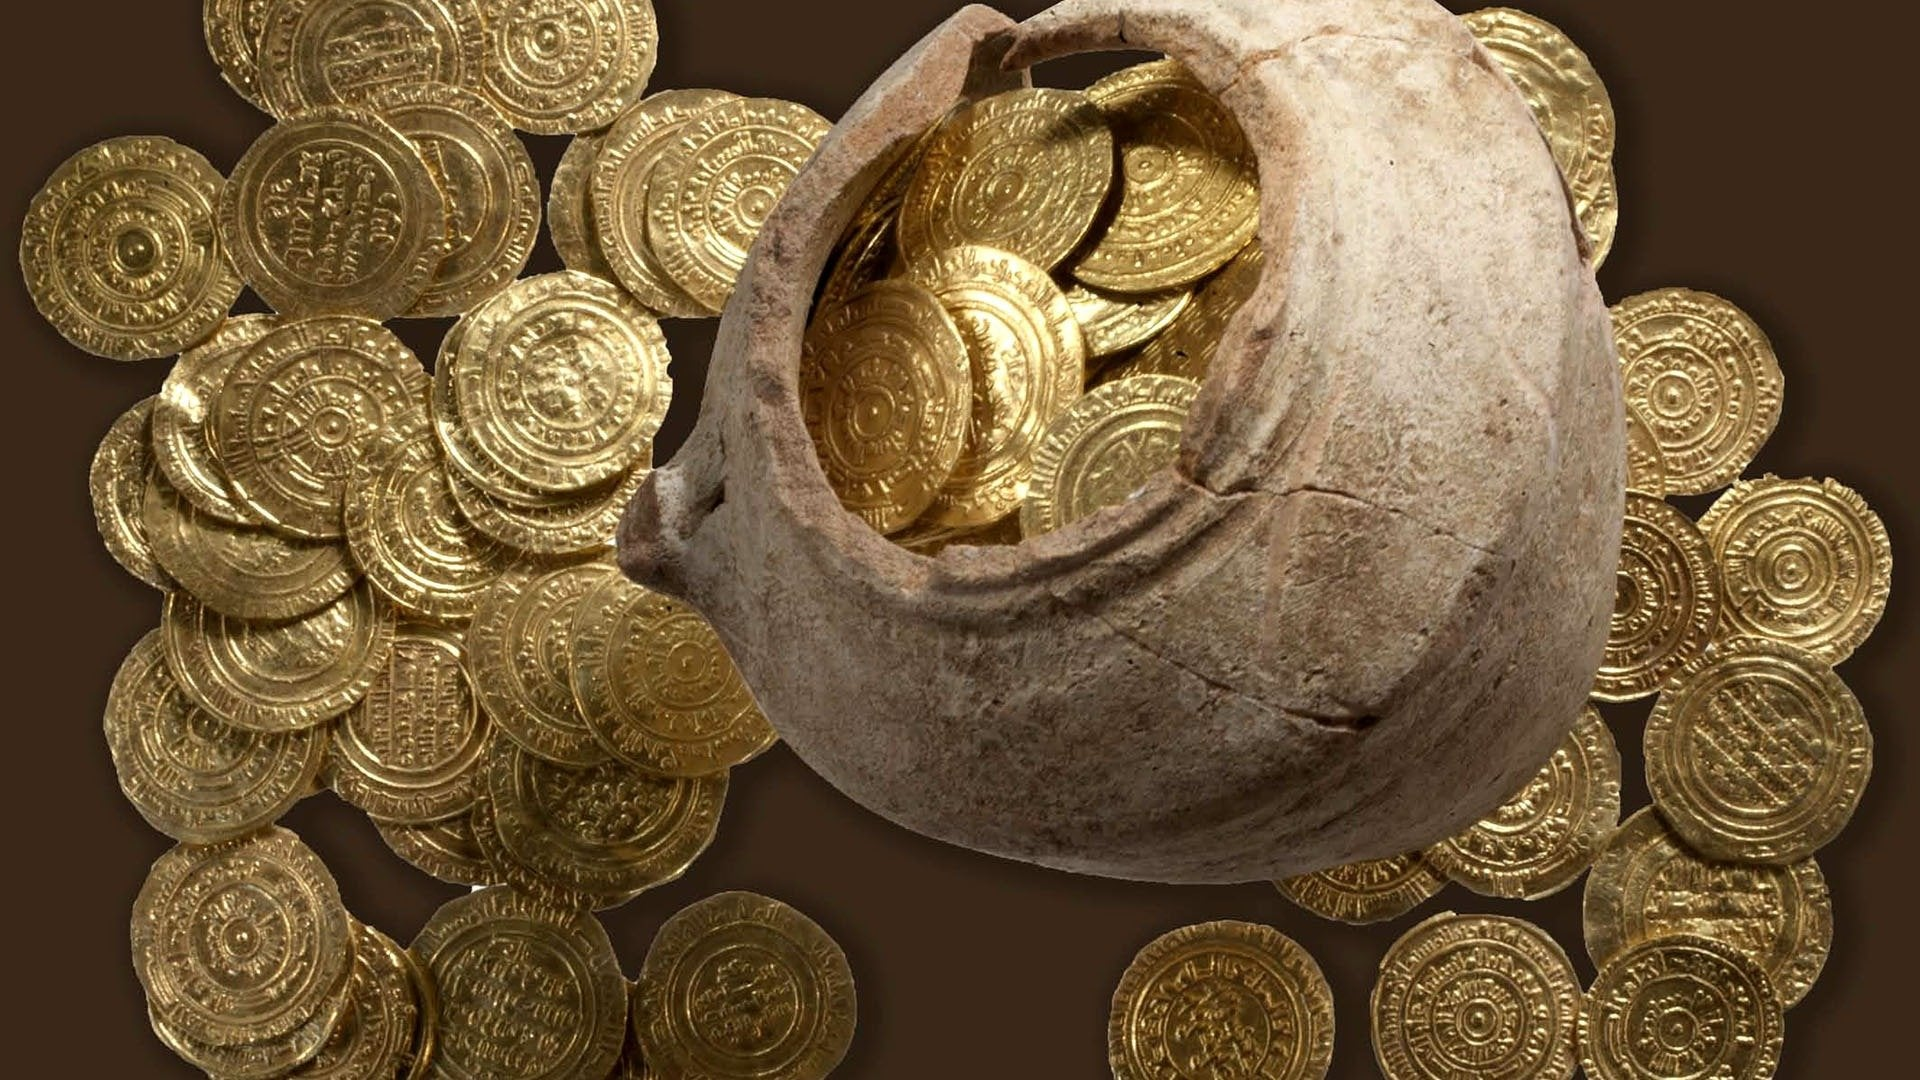 The Lost Treasure of the Holy Land